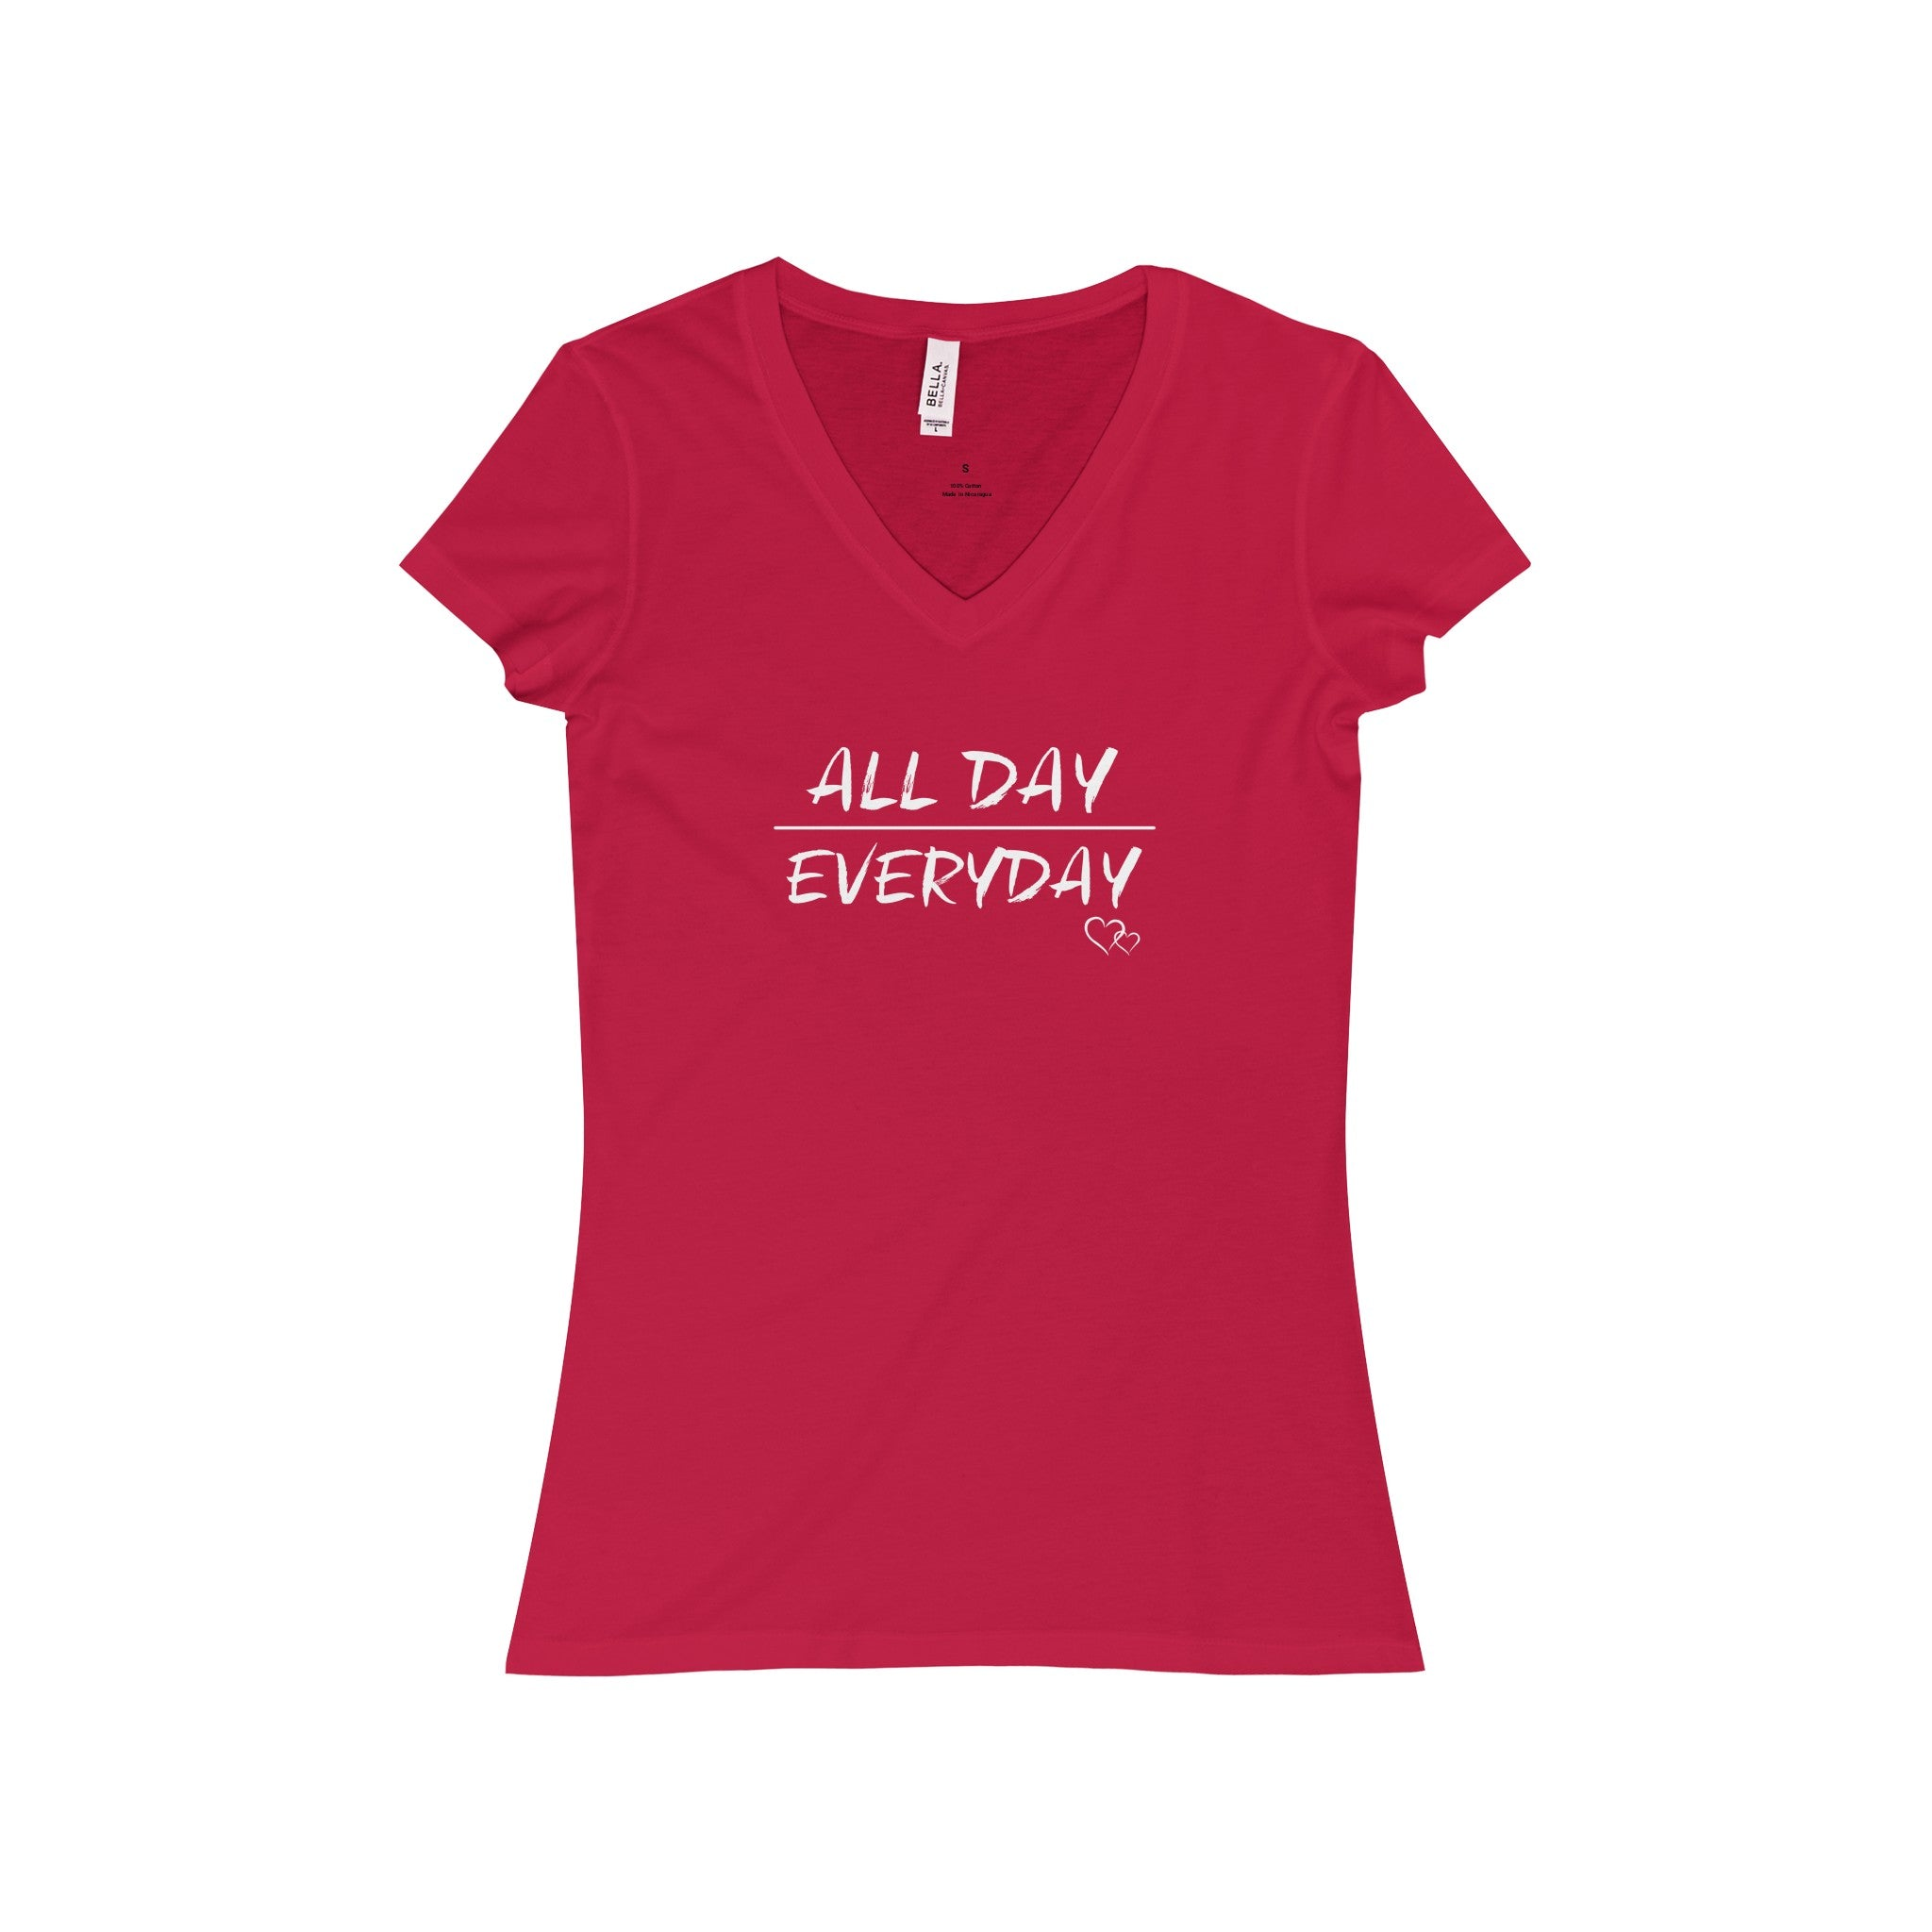 ALL DAY EVERYDAY - Short Sleeve V